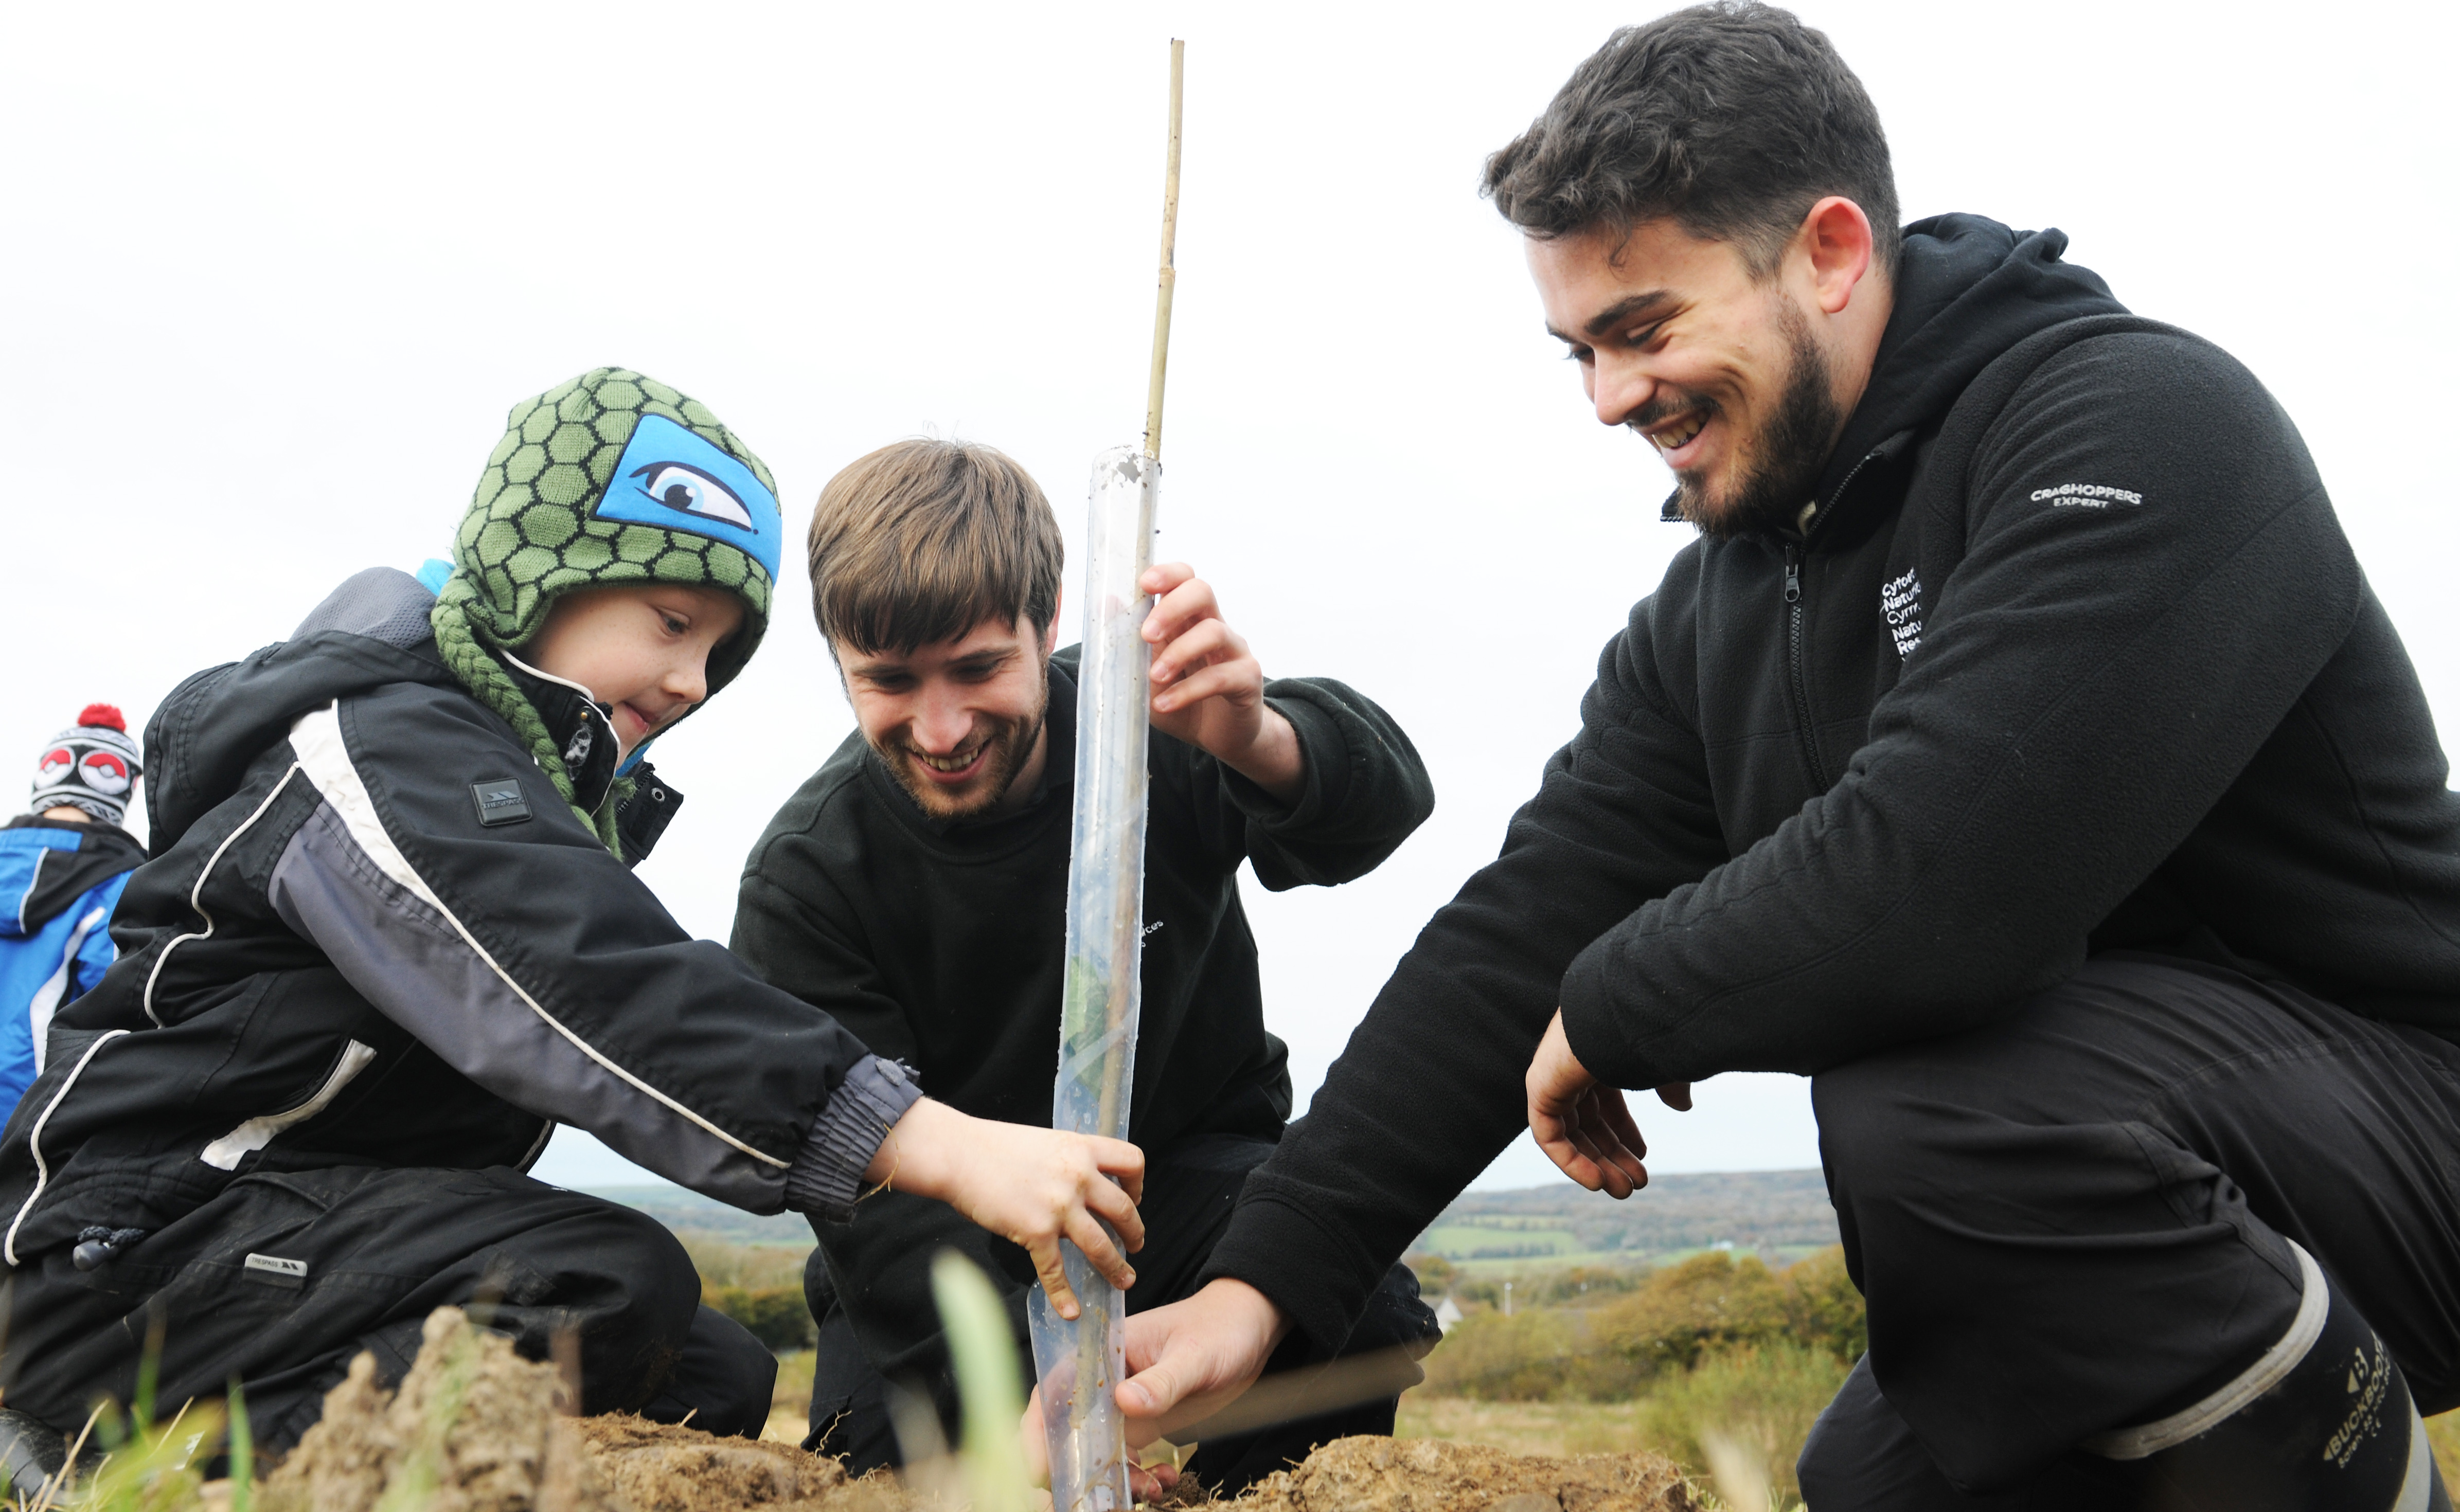 NRW staff with a child planting a tree